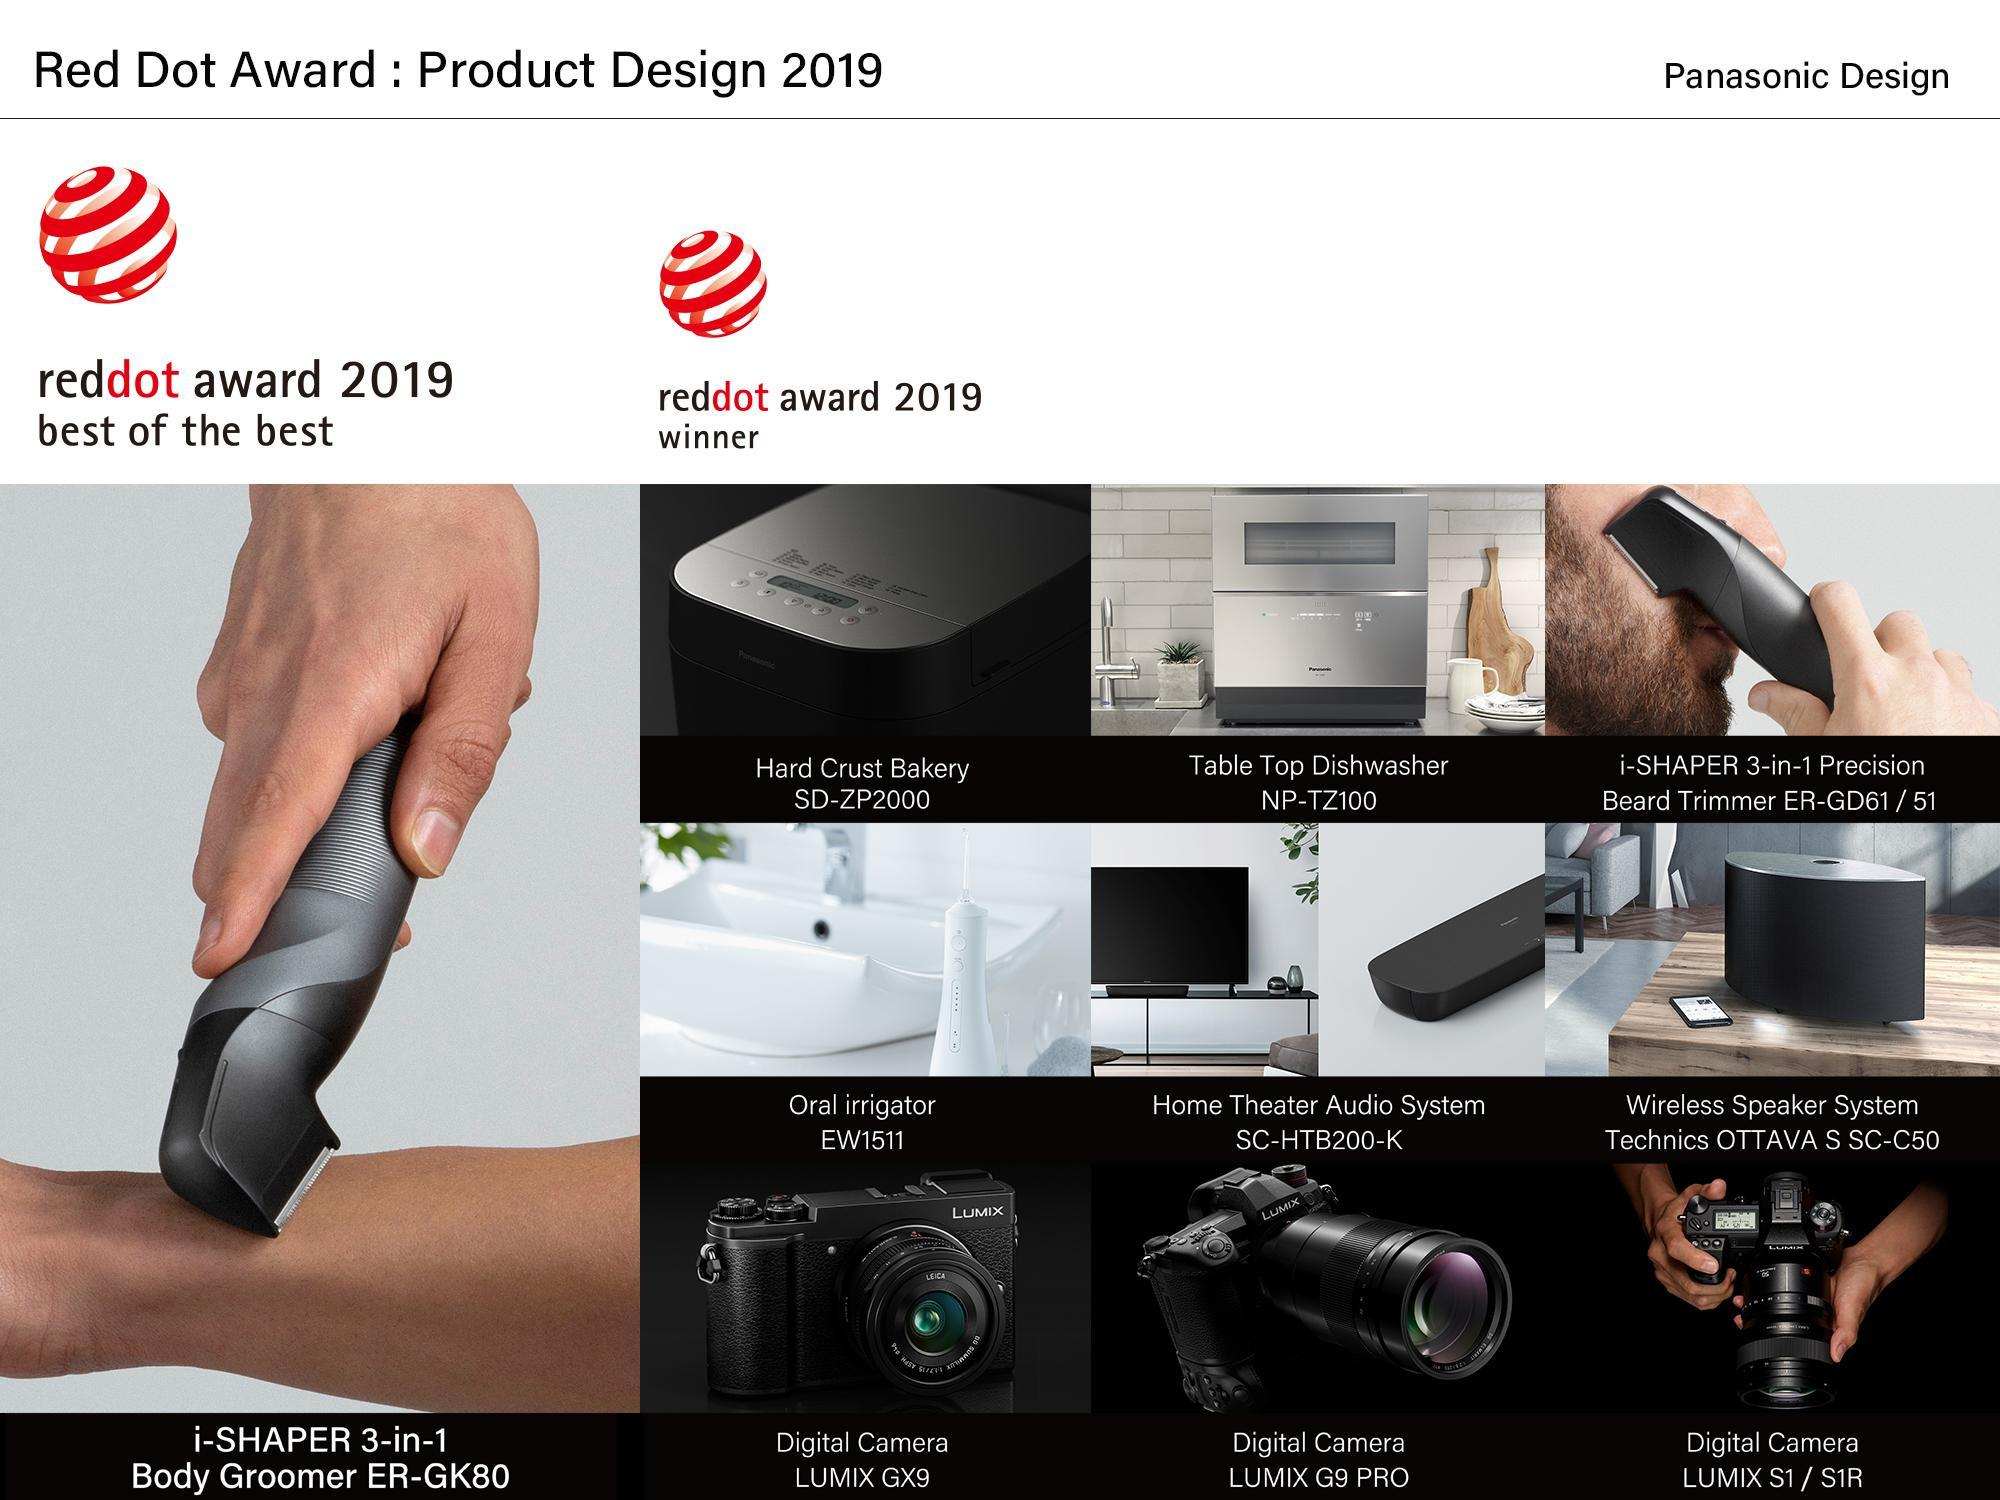 image: 10 Panasonic products that received the Red Dot Award 2019: Product Design